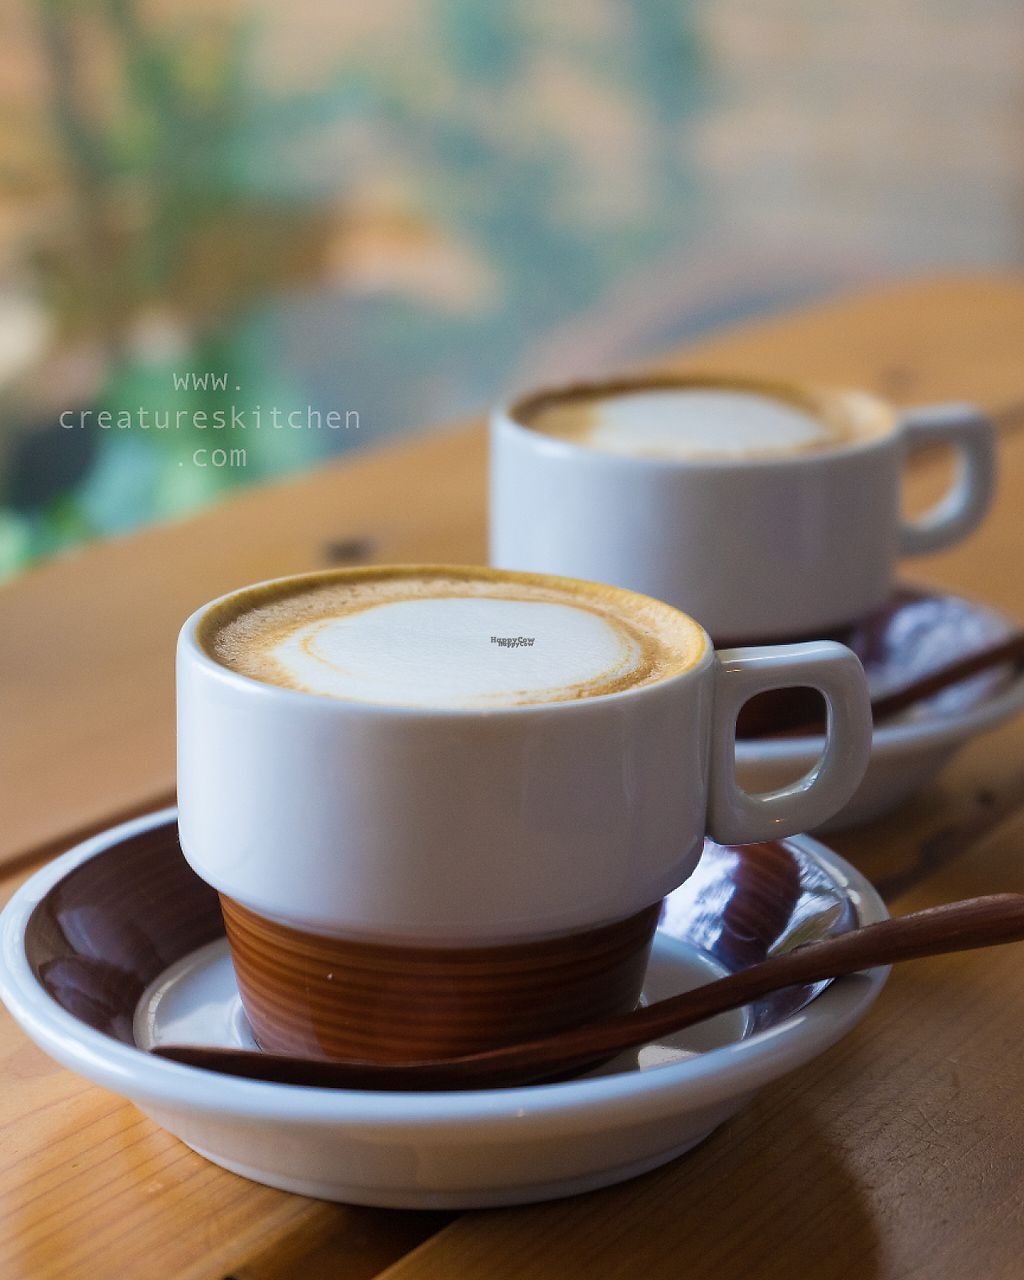 """Photo of Phalam Cafe  by <a href=""""/members/profile/EmmaCebuliak"""">EmmaCebuliak</a> <br/>Soy cappuccinos.  <br/> February 11, 2017  - <a href='/contact/abuse/image/55894/225173'>Report</a>"""